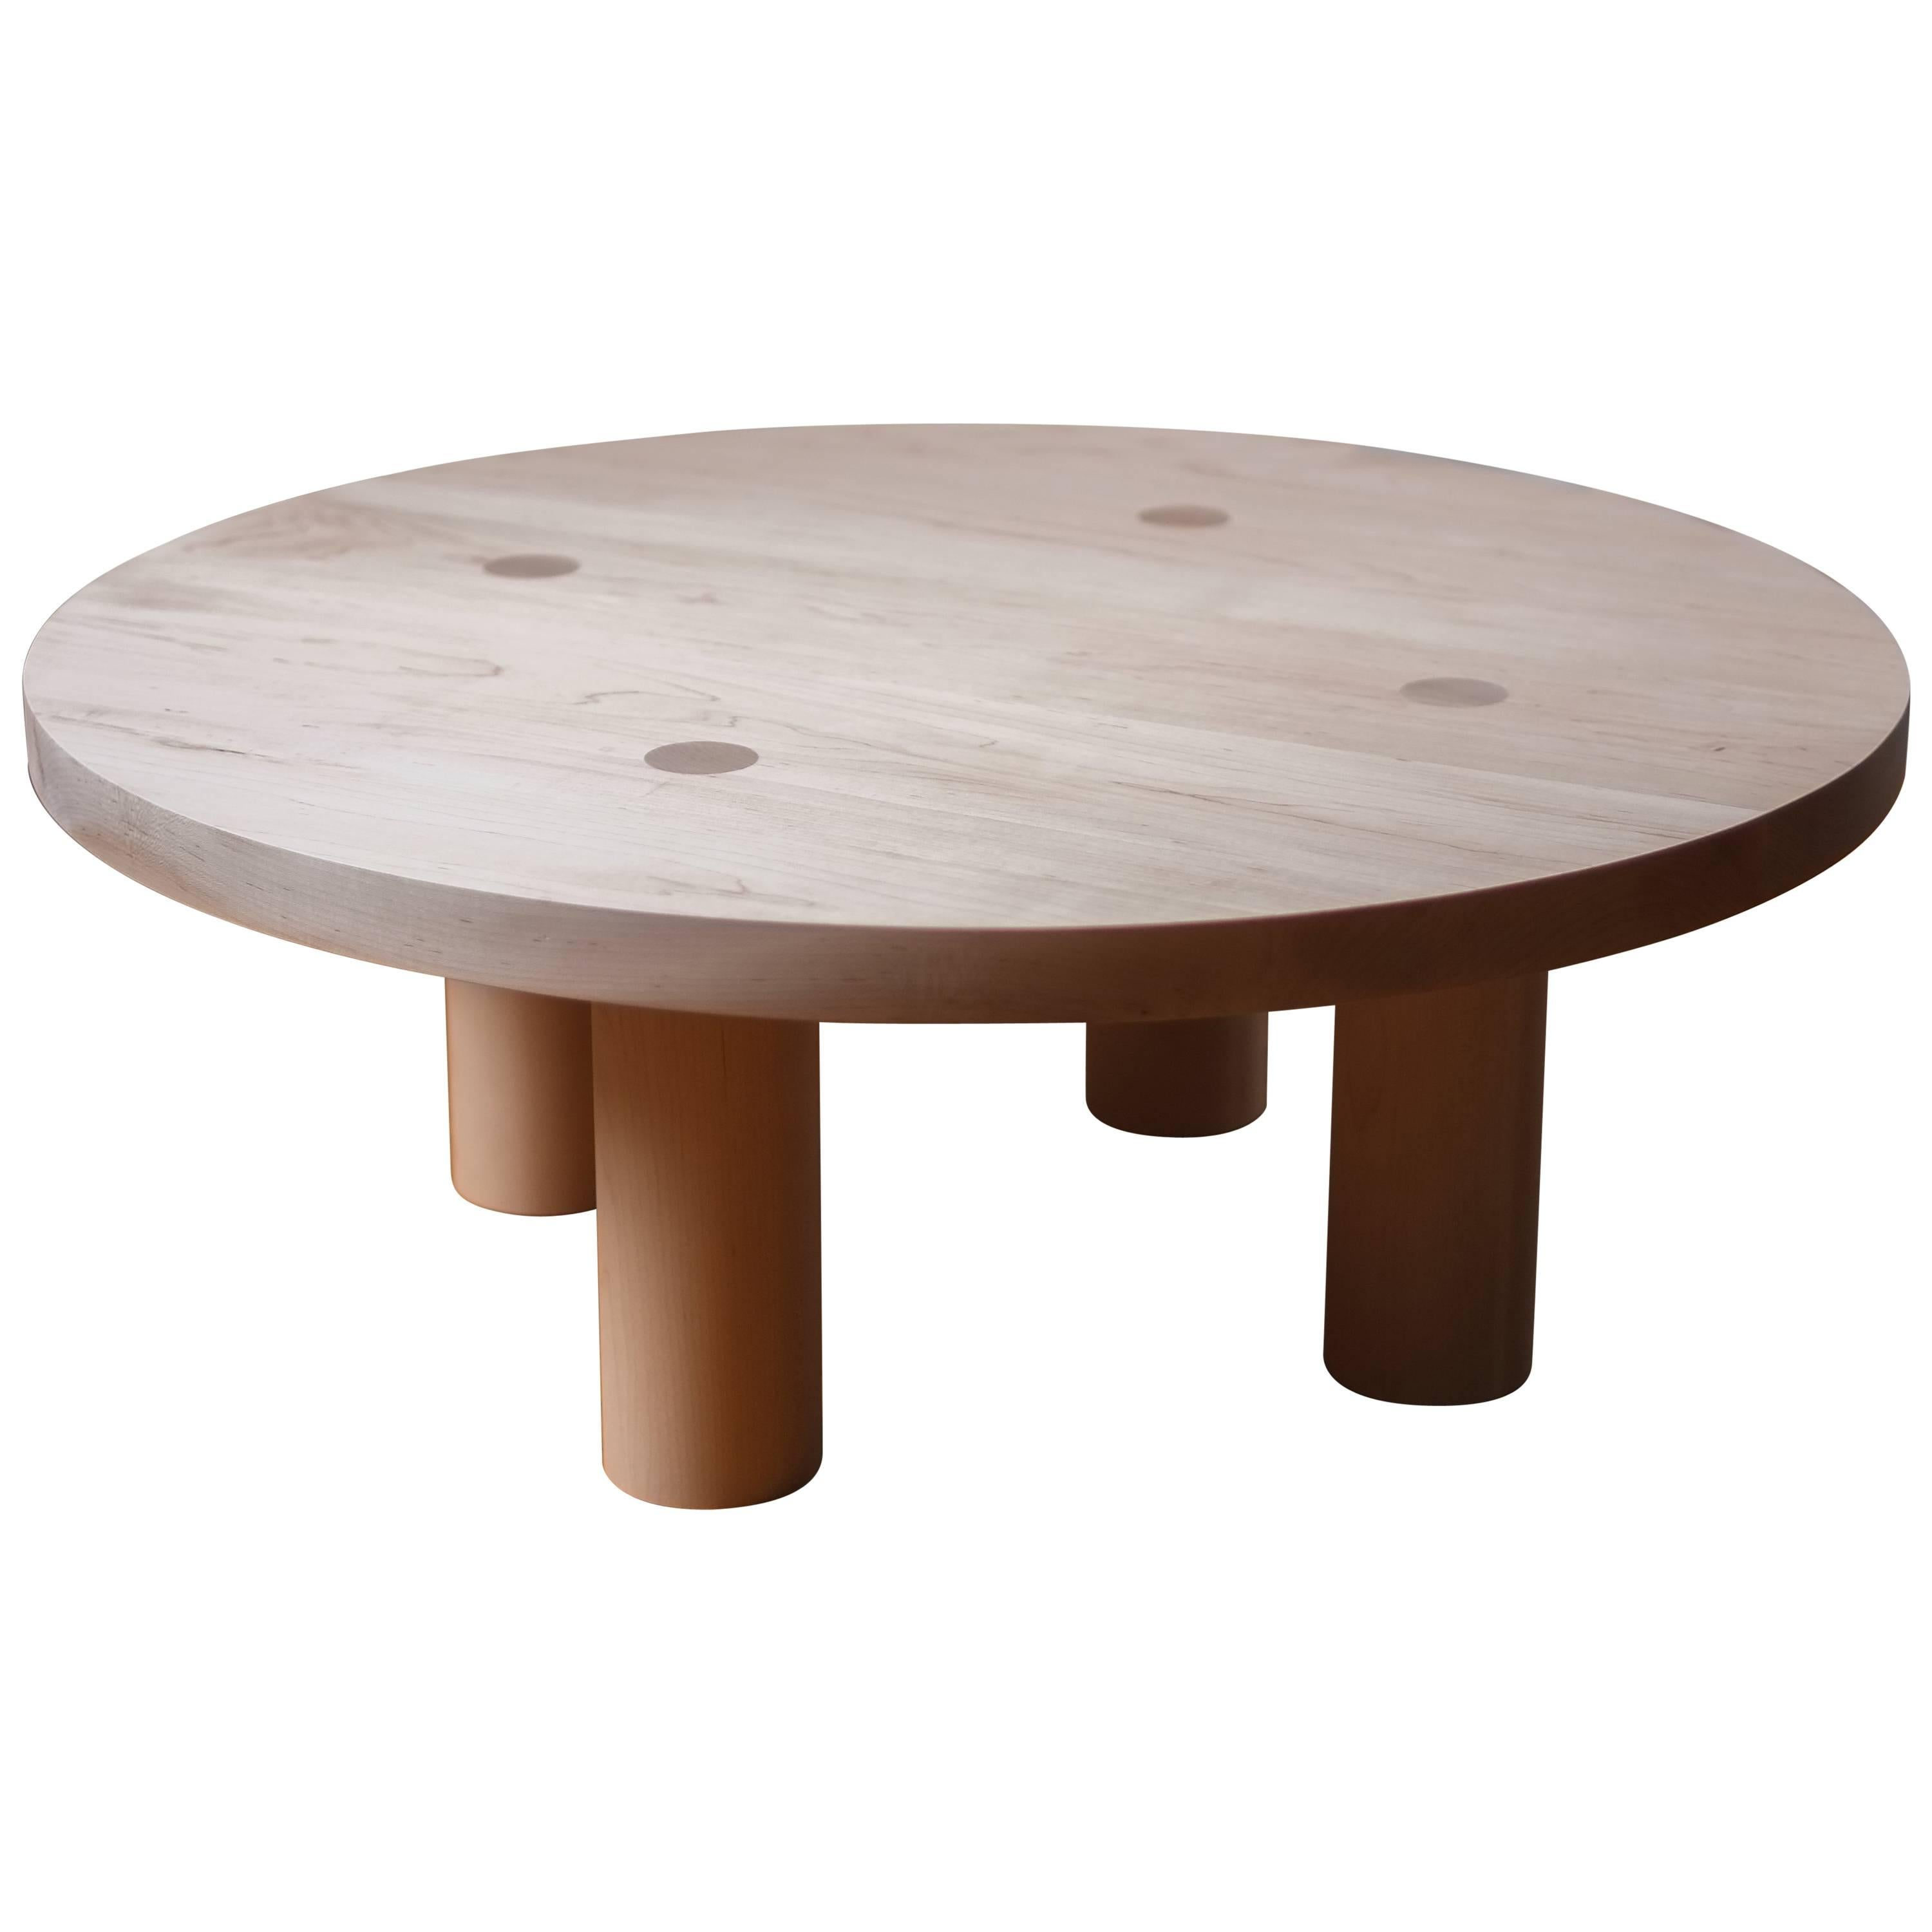 Contemporary Wood Column Coffee Table in White Oak by Fort Standard